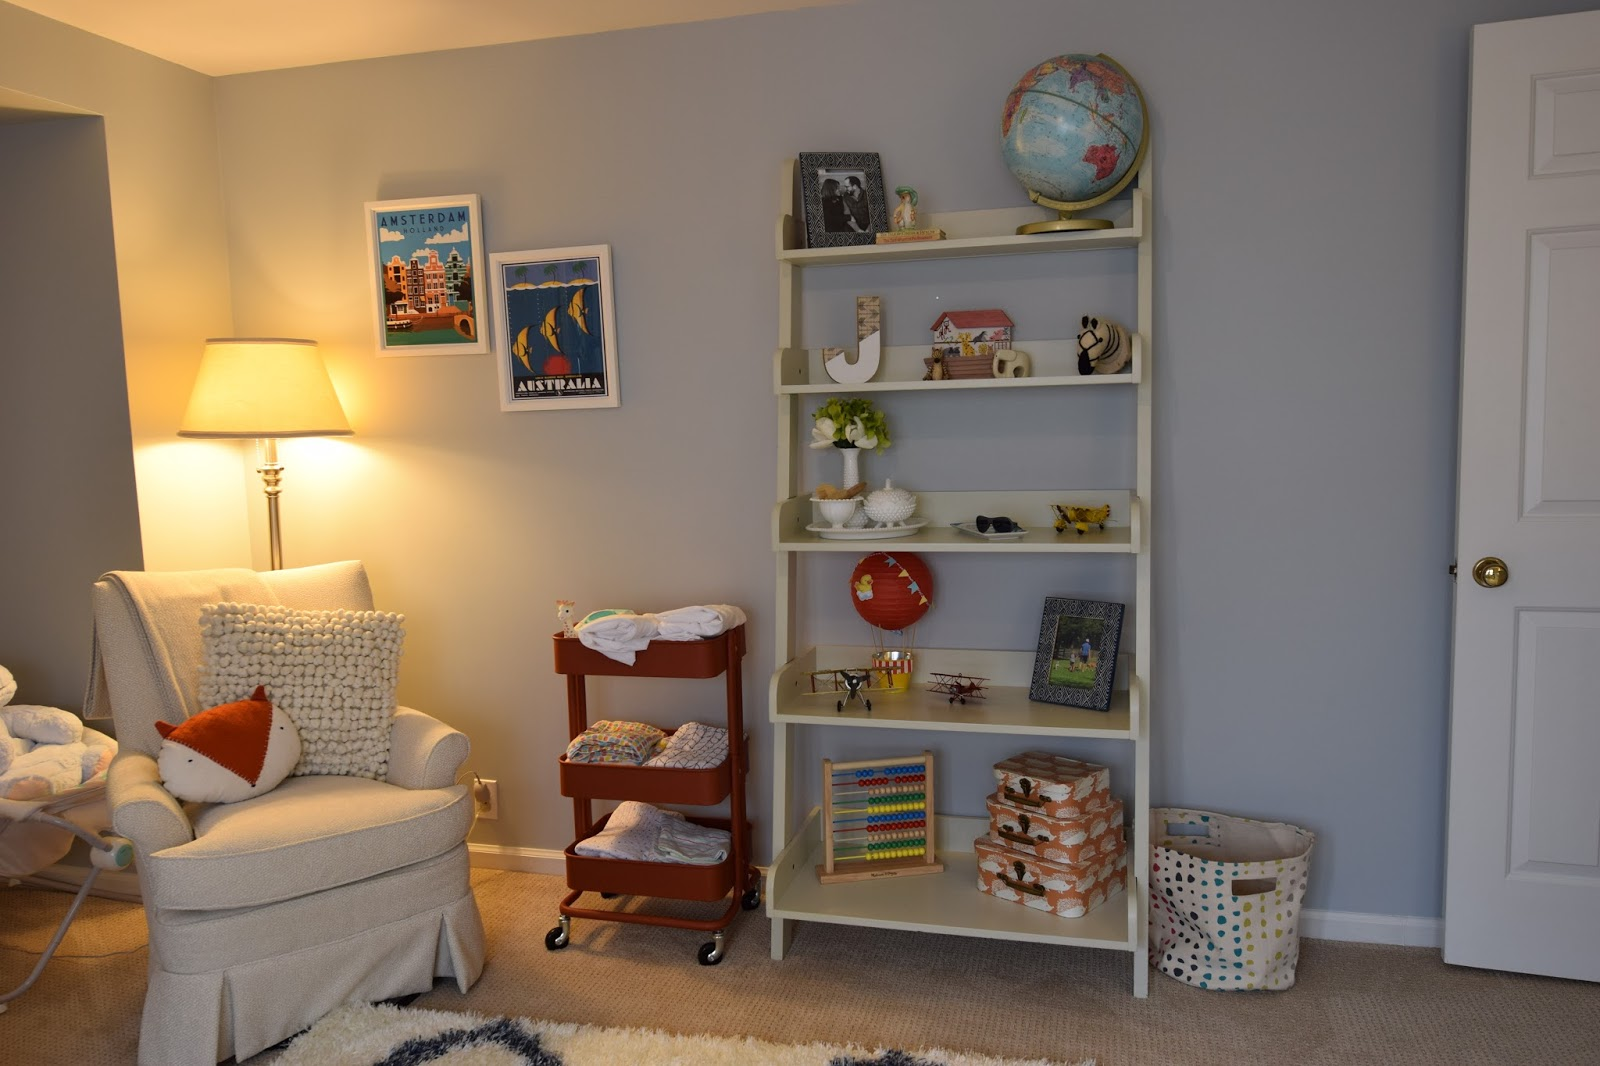 Pottery Barn Ladder Shelves , Chair Was A Hand Me Down That I Had  Reupholstered In Leftover Fabric That I Originally Used On Our Living Room  Couch,